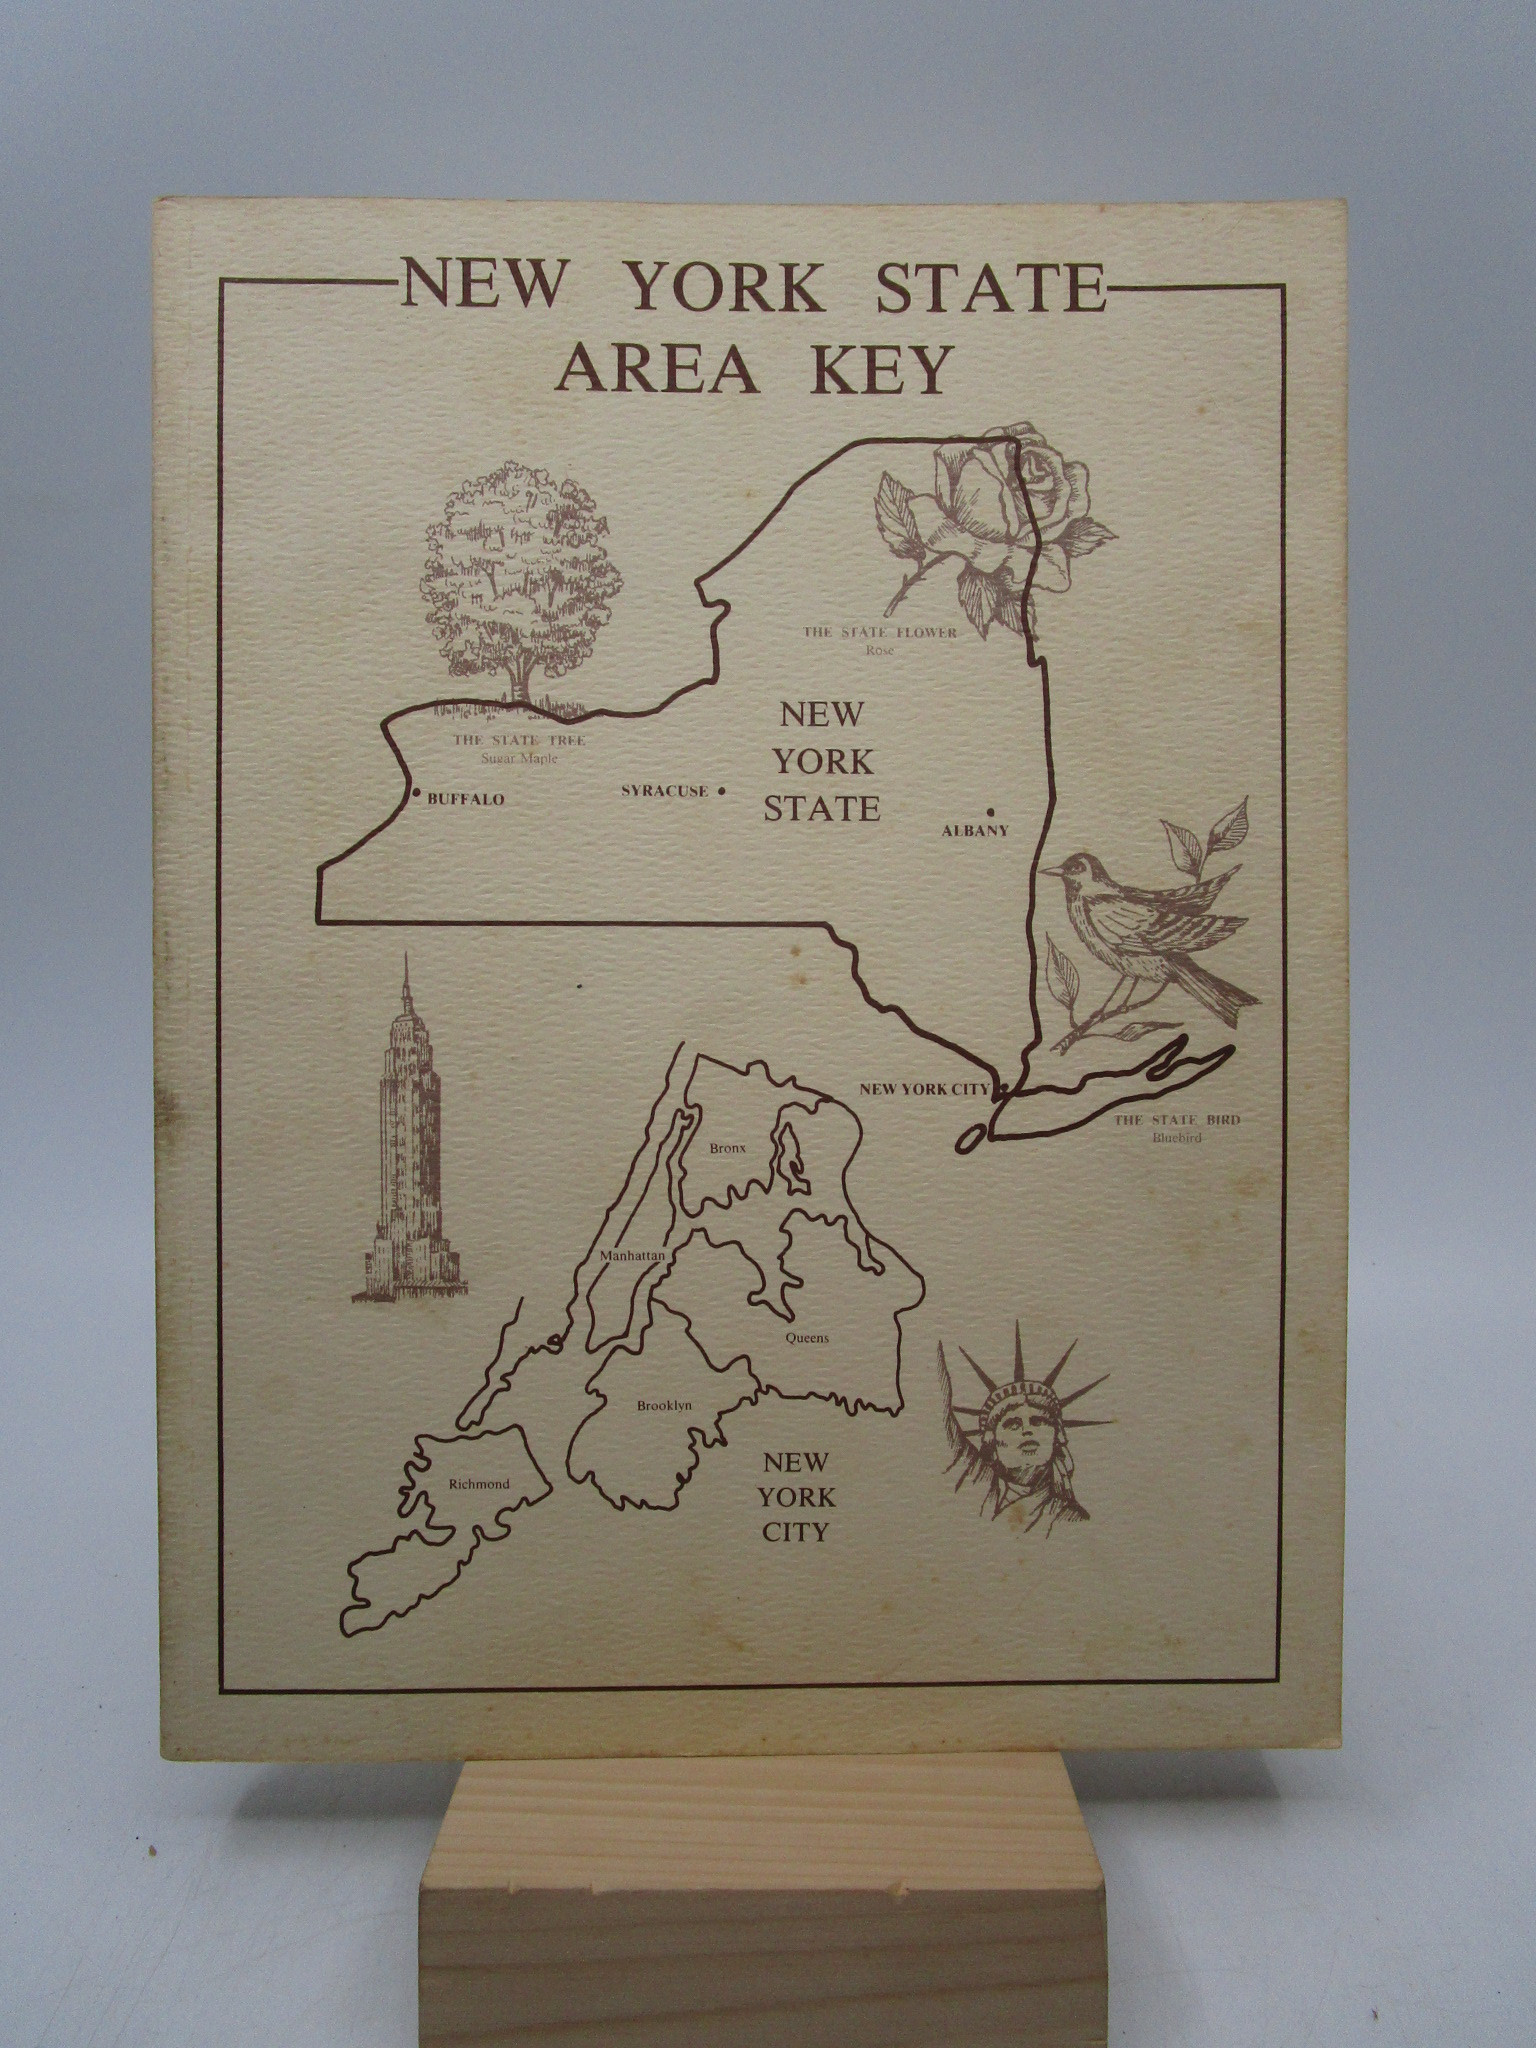 Image for New York Area Key: A Guide to the Genealogical Records of the State of New York including Maps, Histories, Charts, and other Helpful Materials (First Edition)